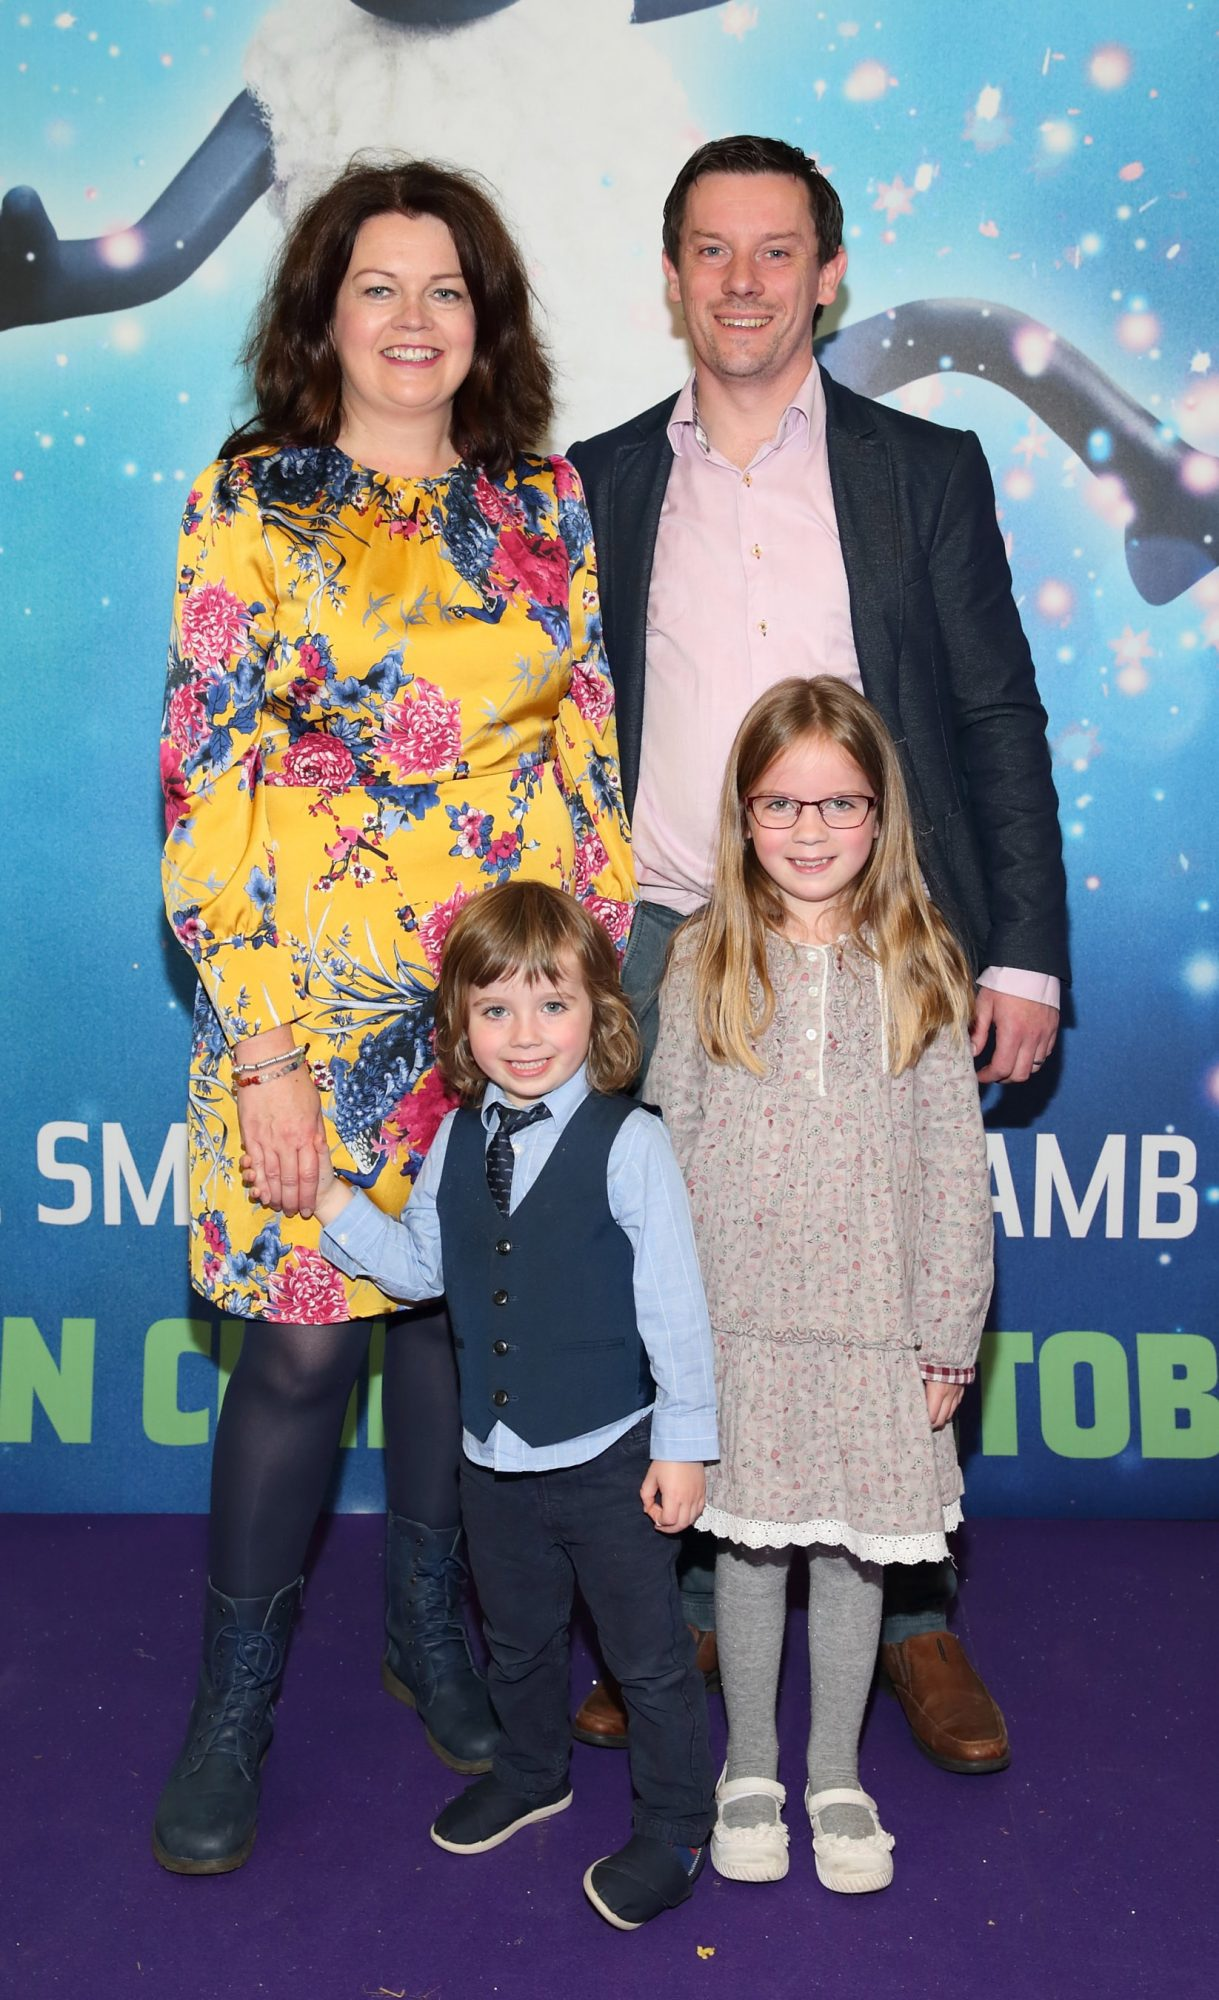 Suzanne Winston, Garret Winston, Turlach Winston and Clodagh Winston at the special preview screening of Shaun the Sheep at the Odeon Cinema In Point Square, Dublin.  Pic: Brian McEvoy Photography